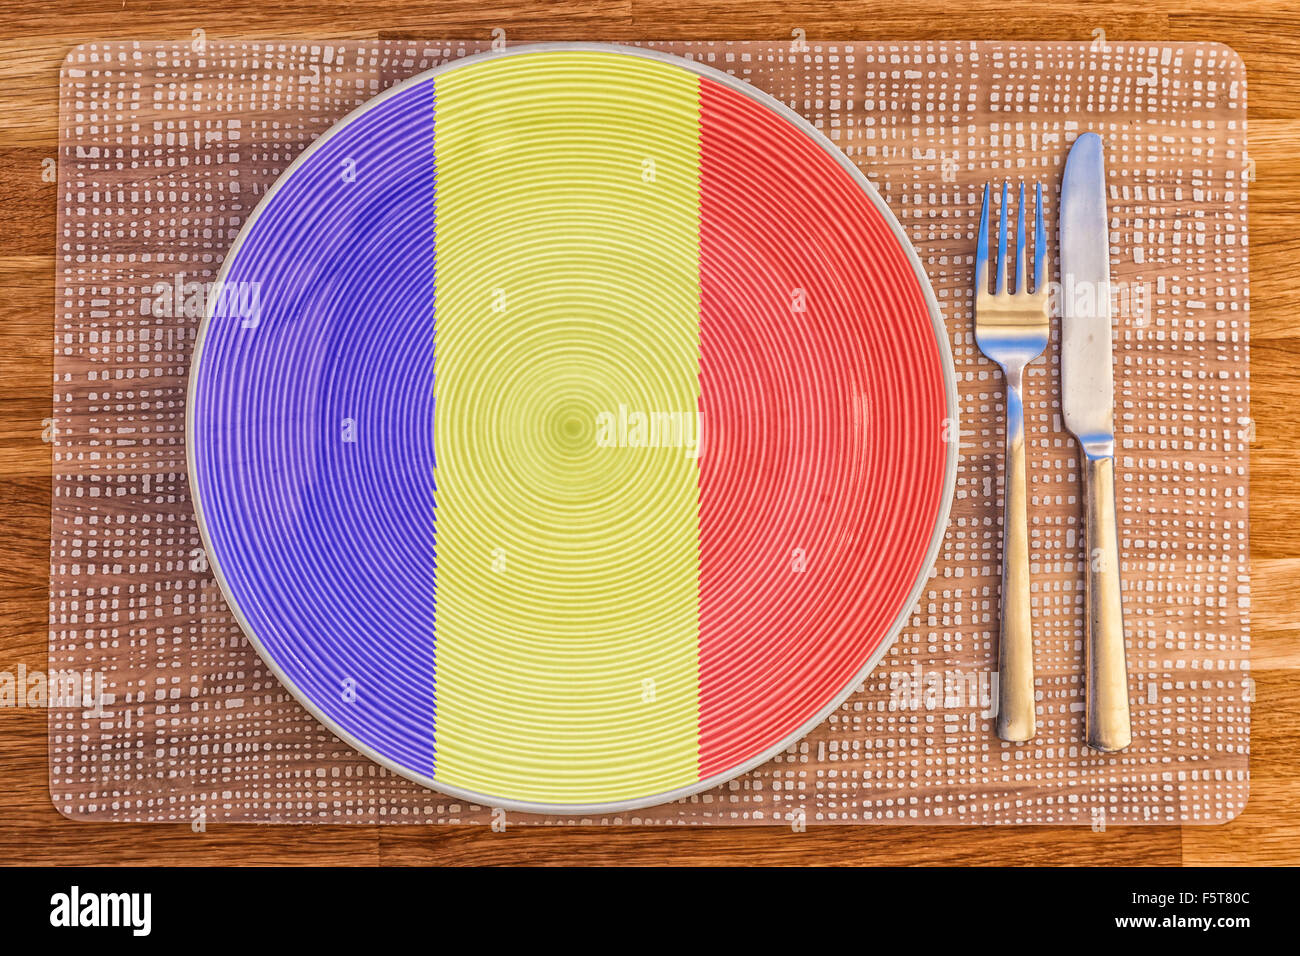 Dinner plate with the flag of Chad on it for your international food and drink concepts. - Stock Image